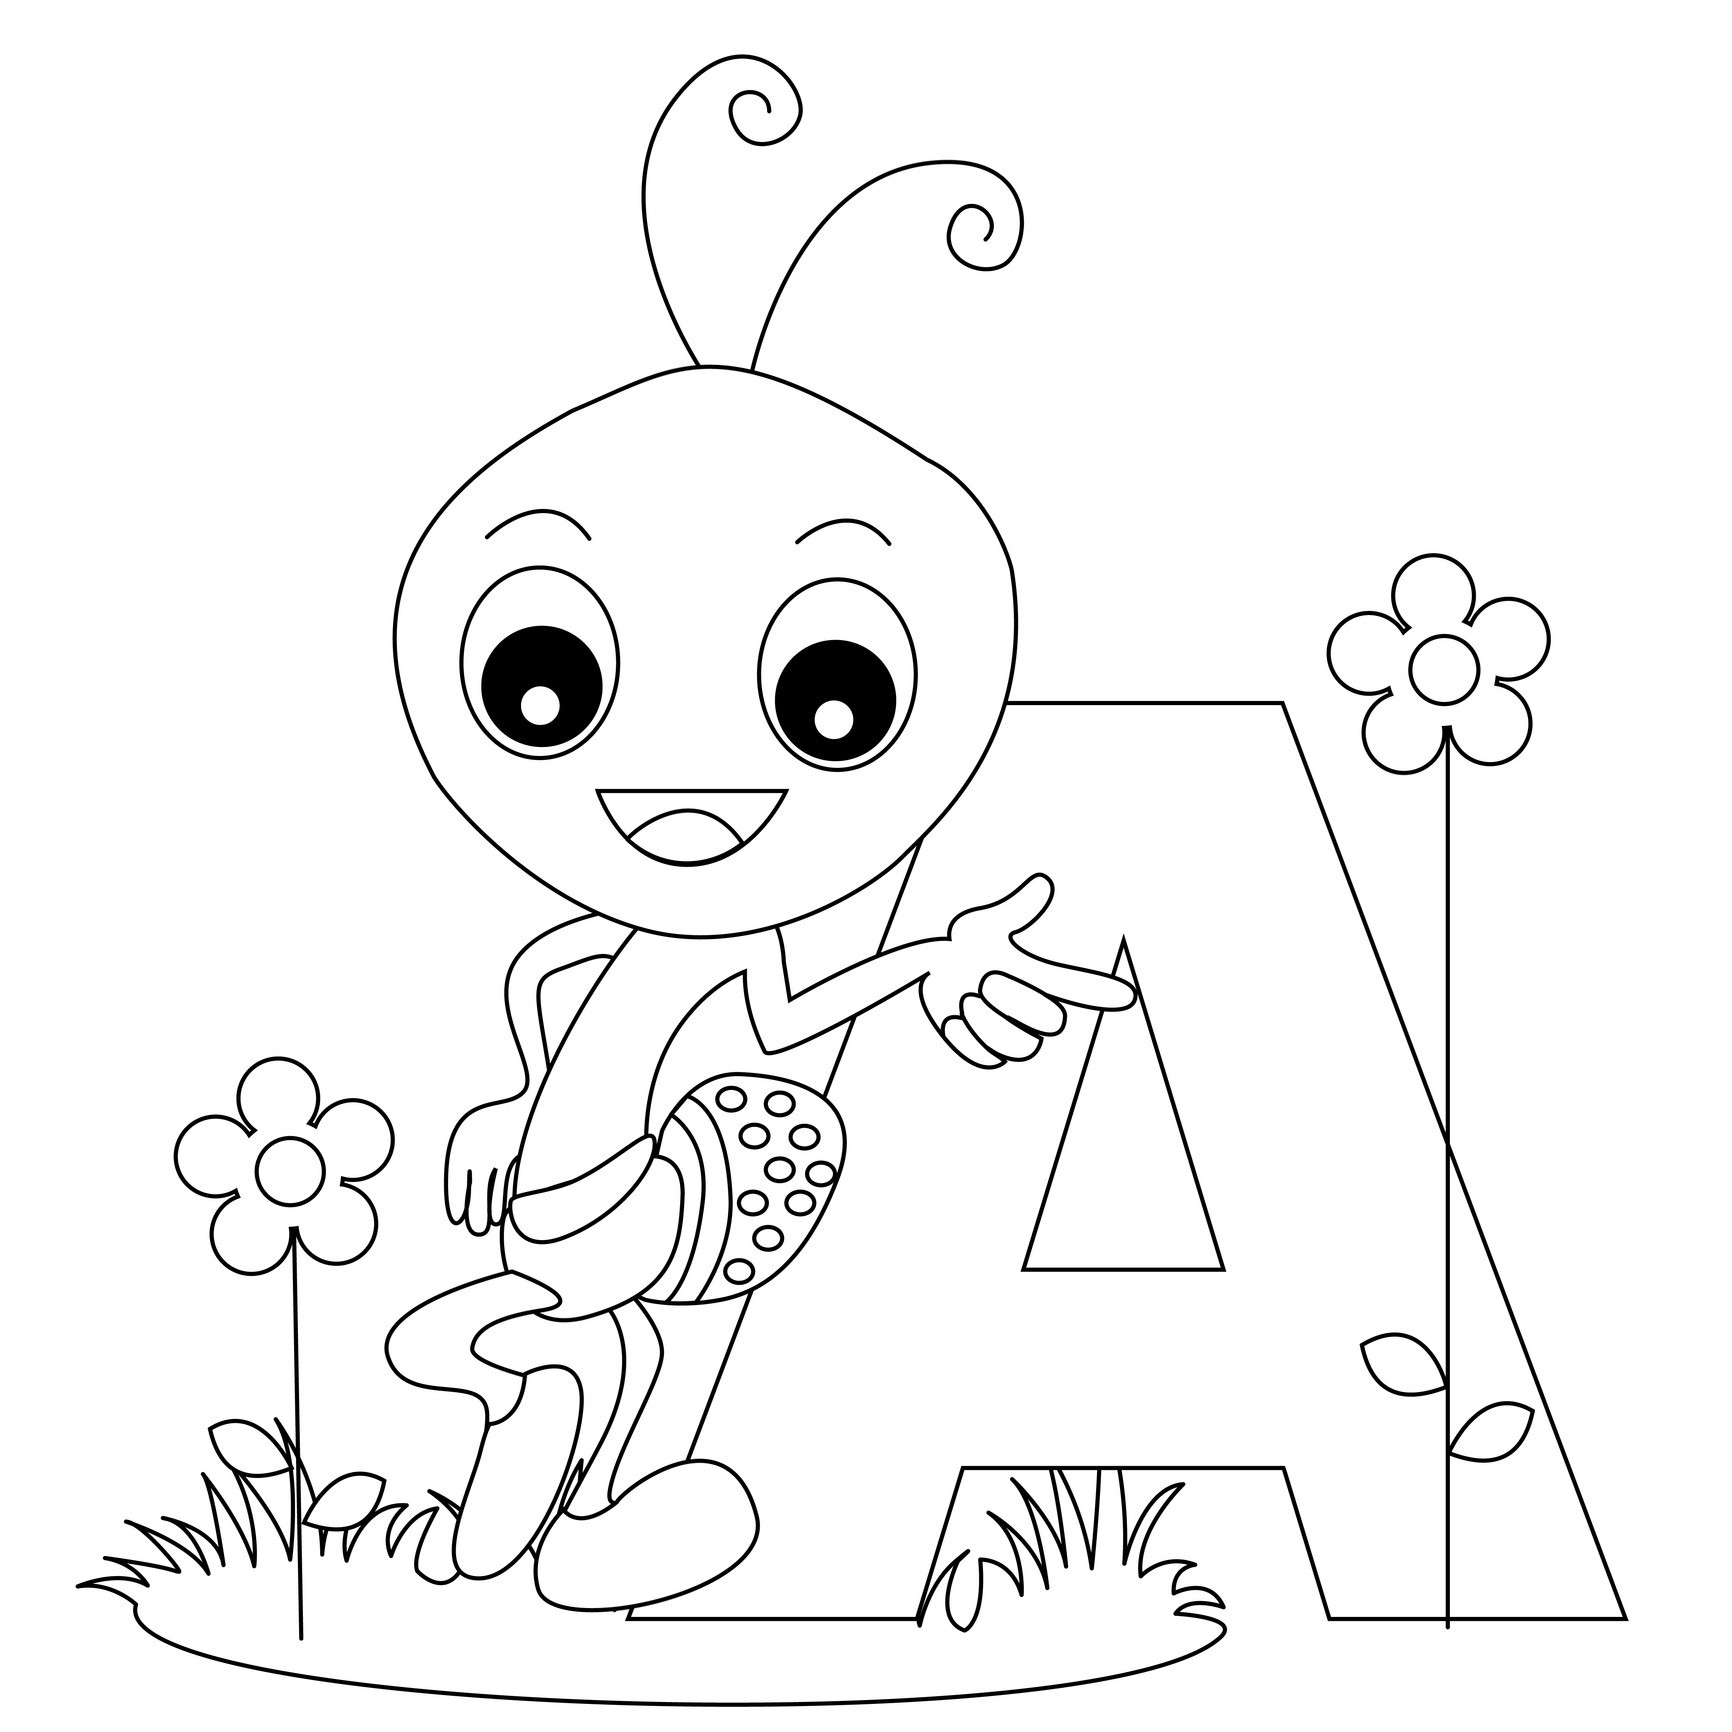 alphabet coloring sheets a z pdf a to z letters with pictures pdf invacation1storg alphabet pdf a z sheets coloring